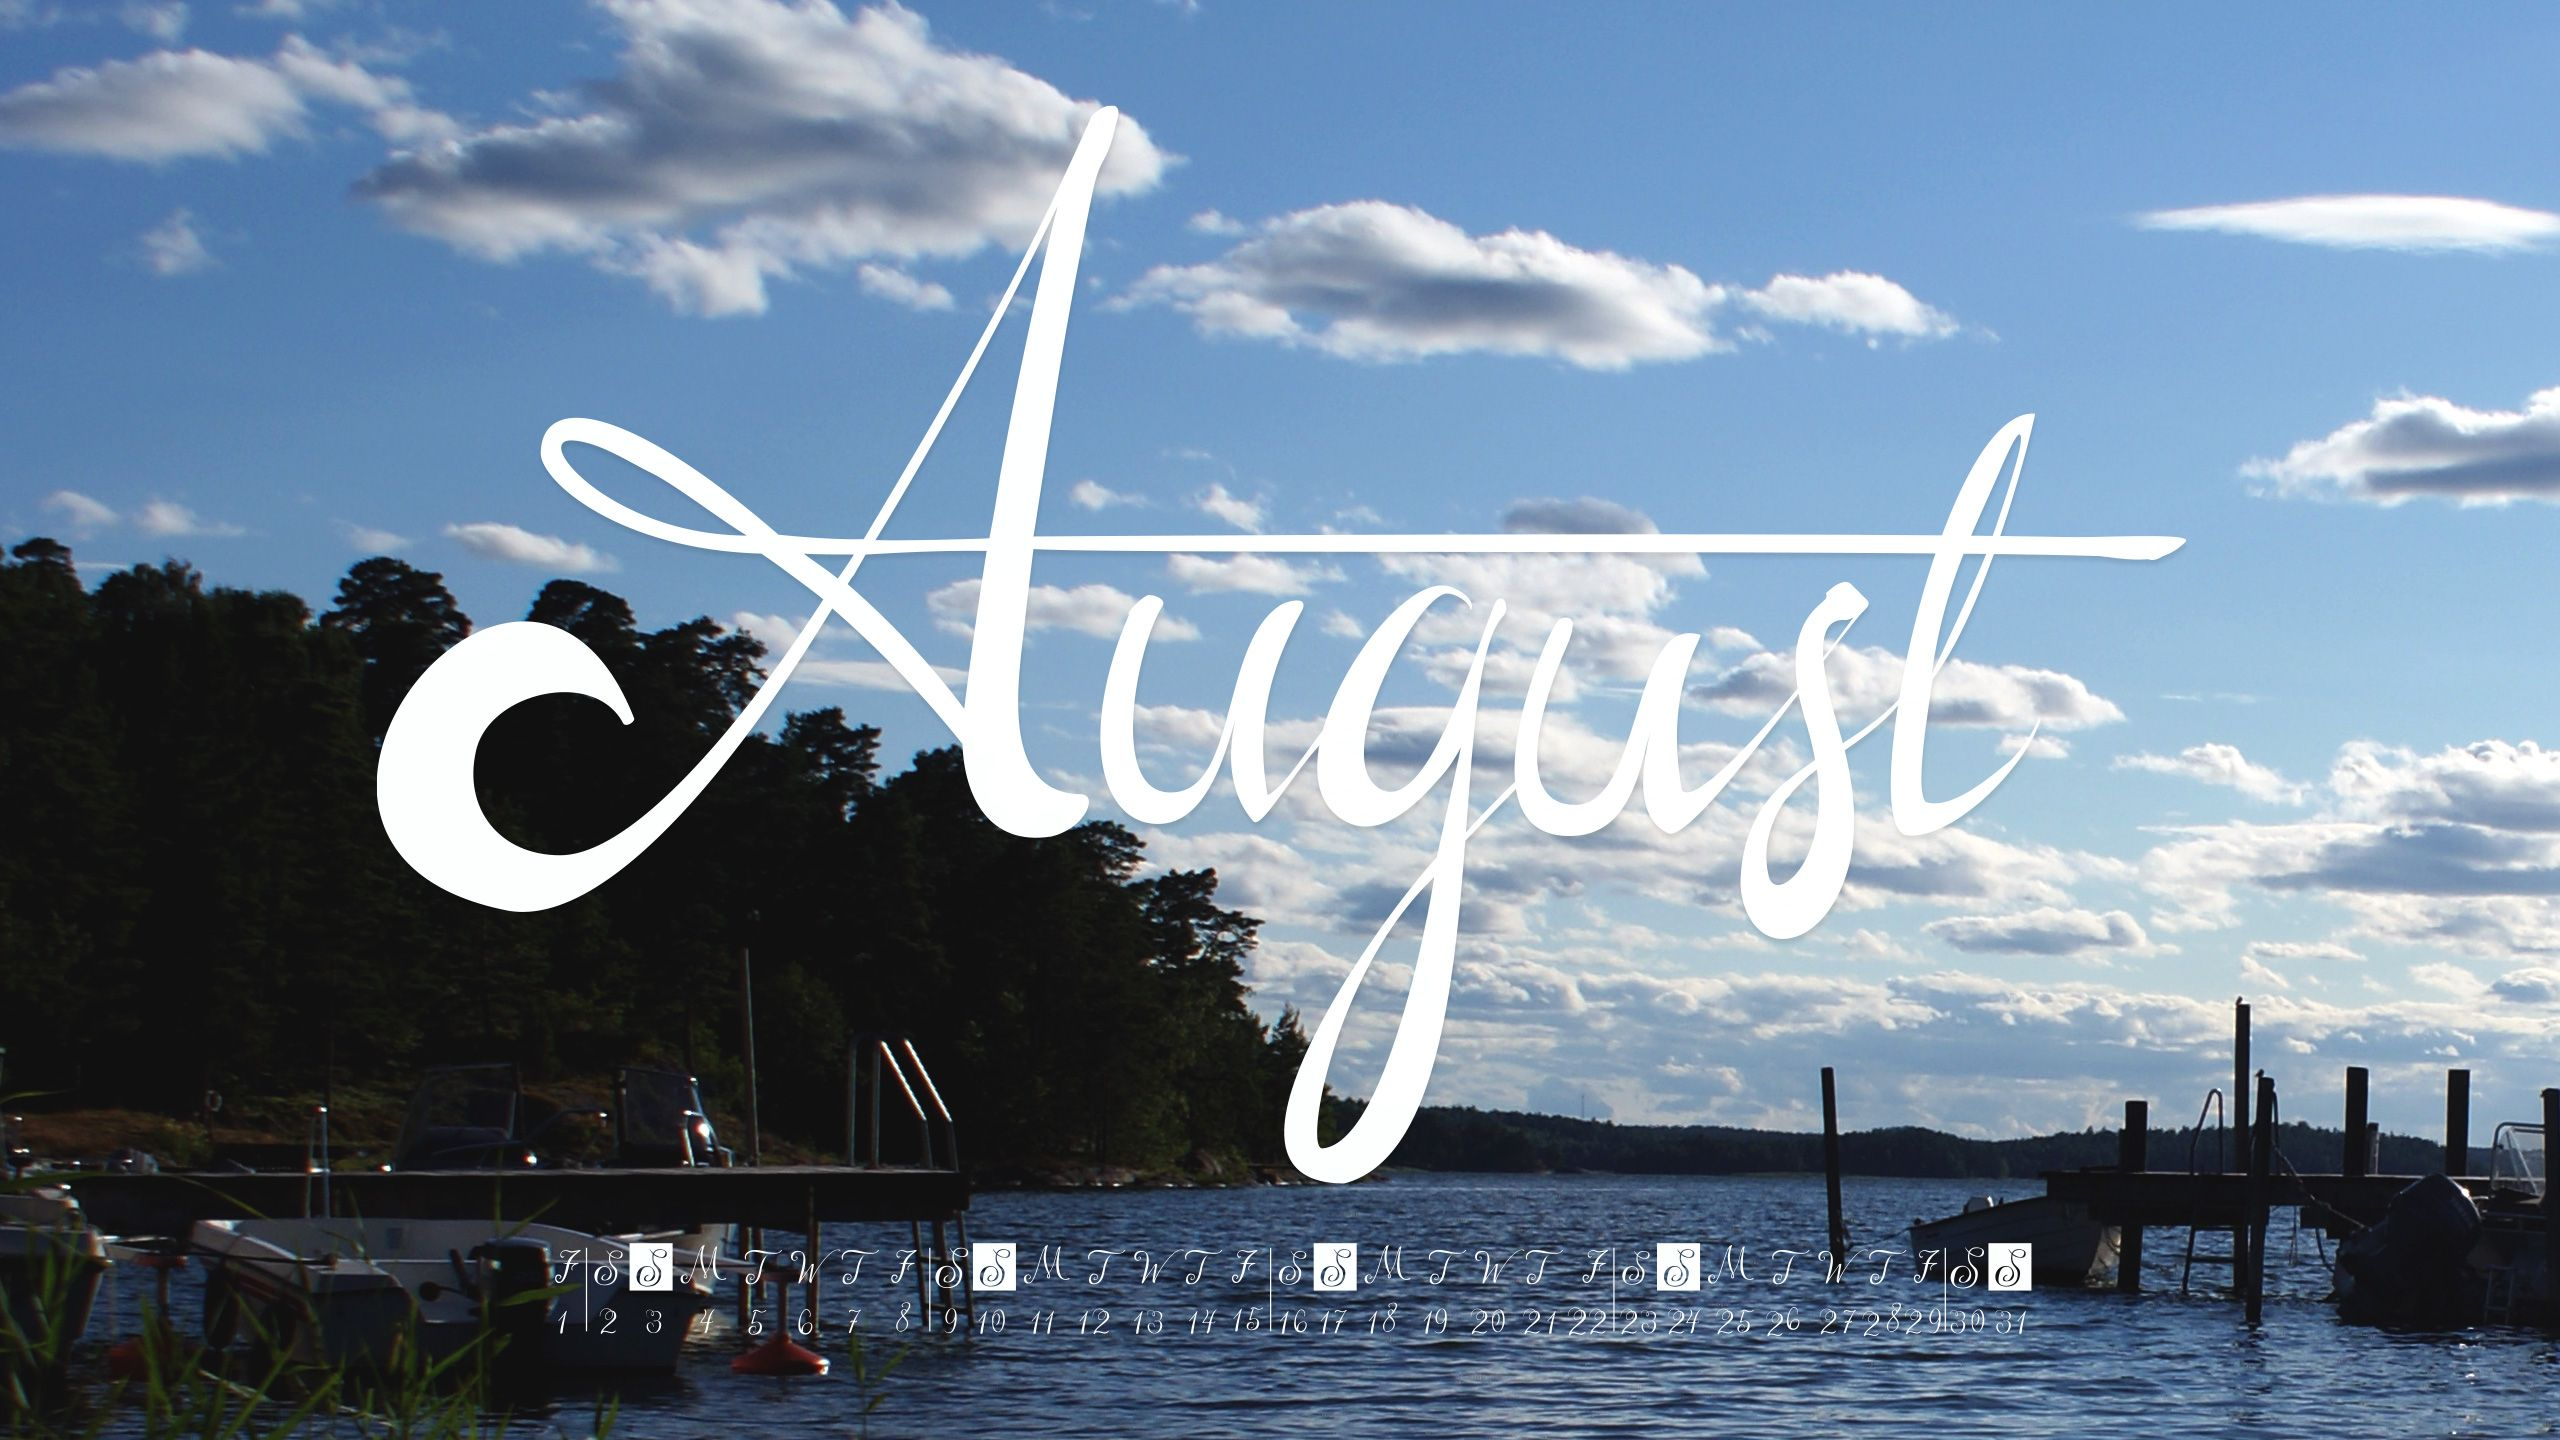 August Wallpaper August wallpaper Hello august images August 2560x1440